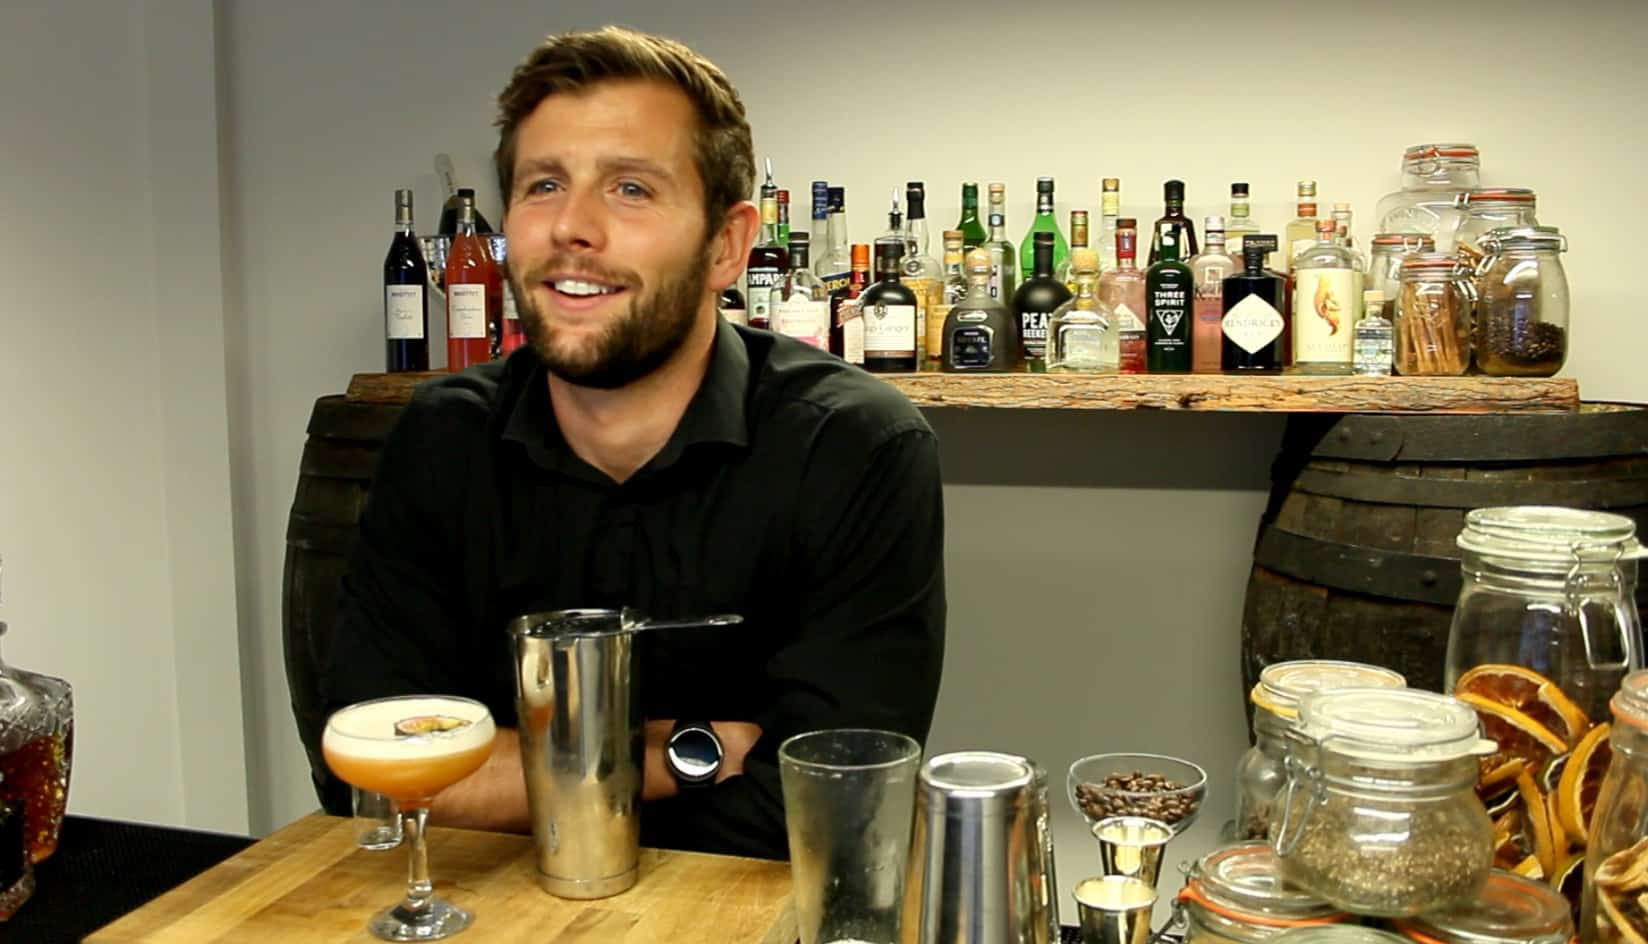 Exquisite Cocktails hosting an online cocktail masterclass as part of a virtual event